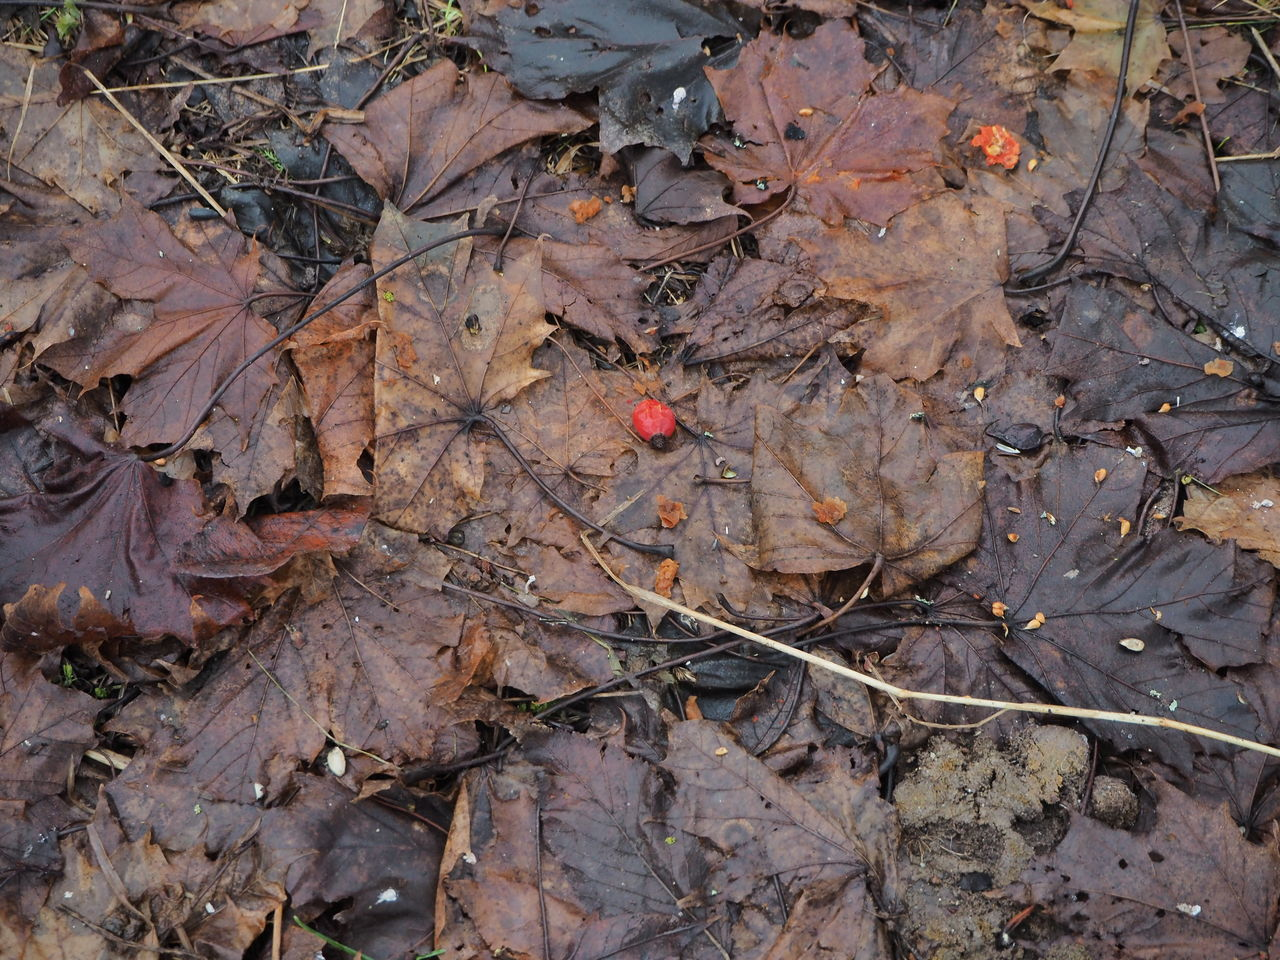 last rose hips on the ground Backgrounds Change Close-up Leaf Maple Leaf Nature No People Outdoors Rose Hips Winter Trees